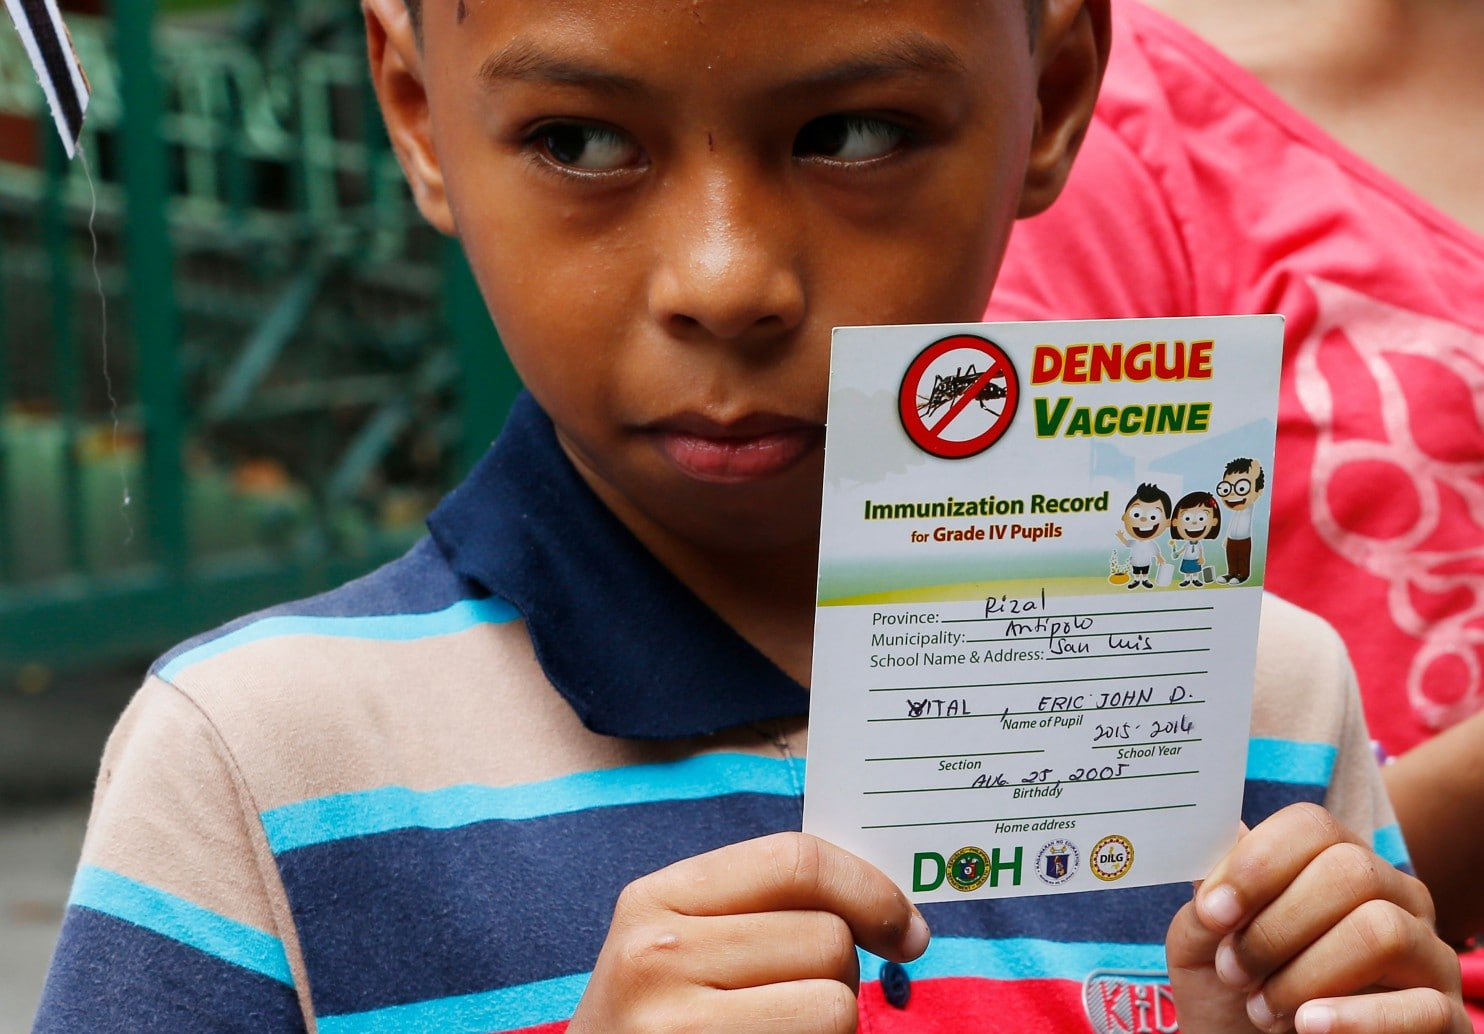 dengue vaccine philippine school children